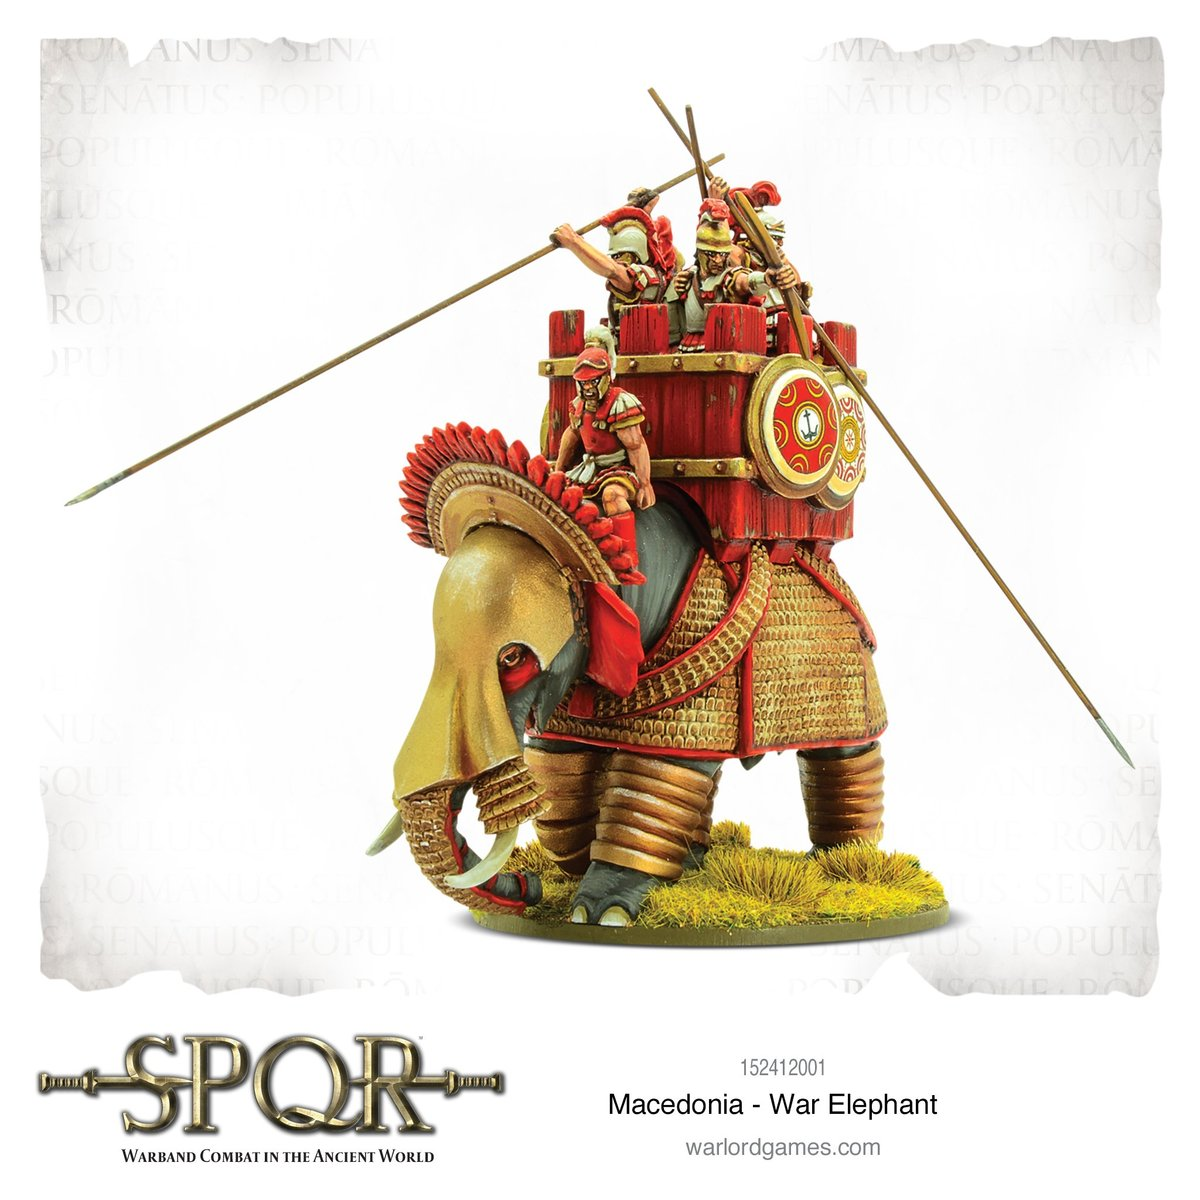 Detailed SPQR Macedonian War Elephant Miniature from Warlord Games